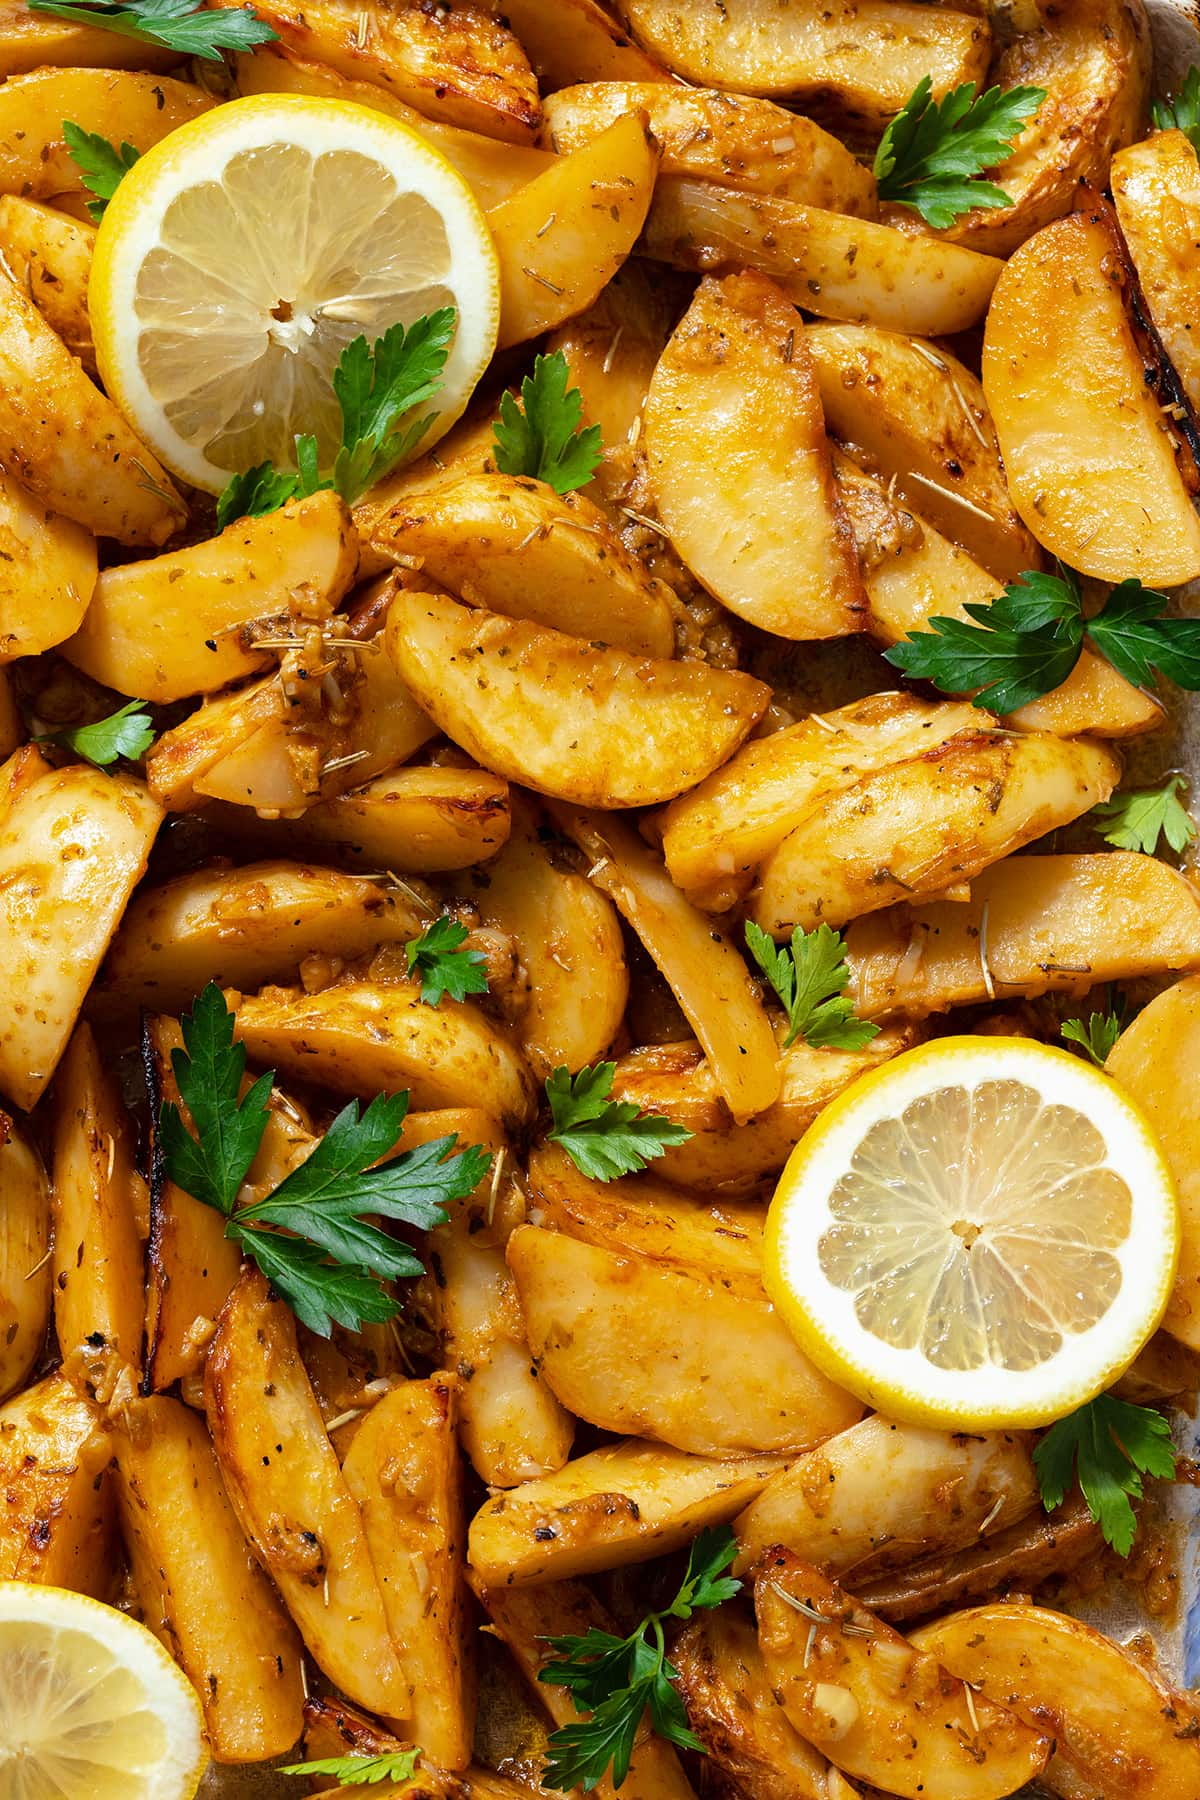 A close up photo of Mediterranean Potatoes garnished with three slice of lemon and chopped parsley.